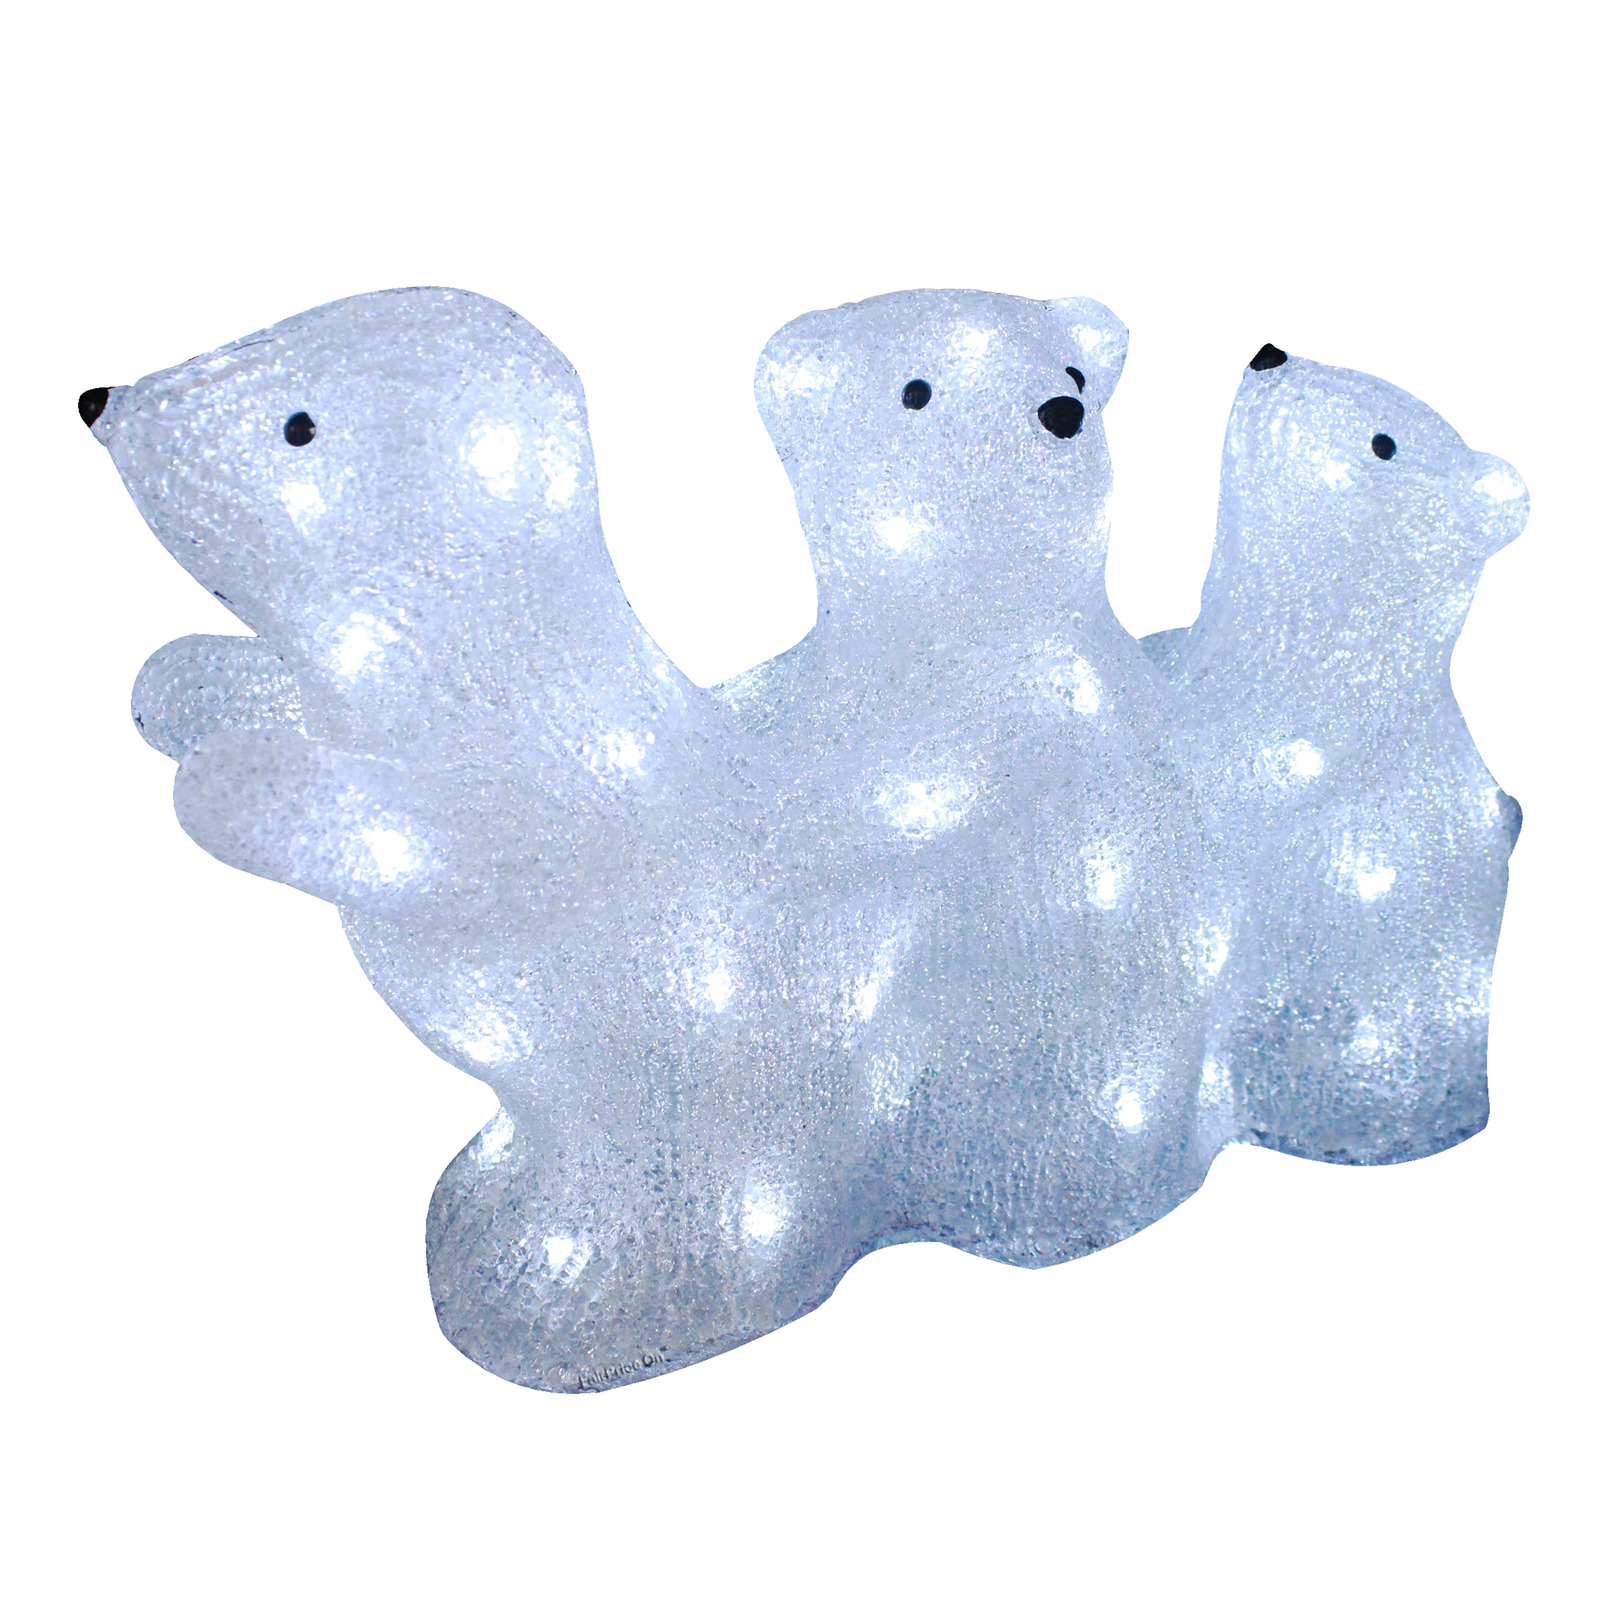 Imported Lighted Polar Bears